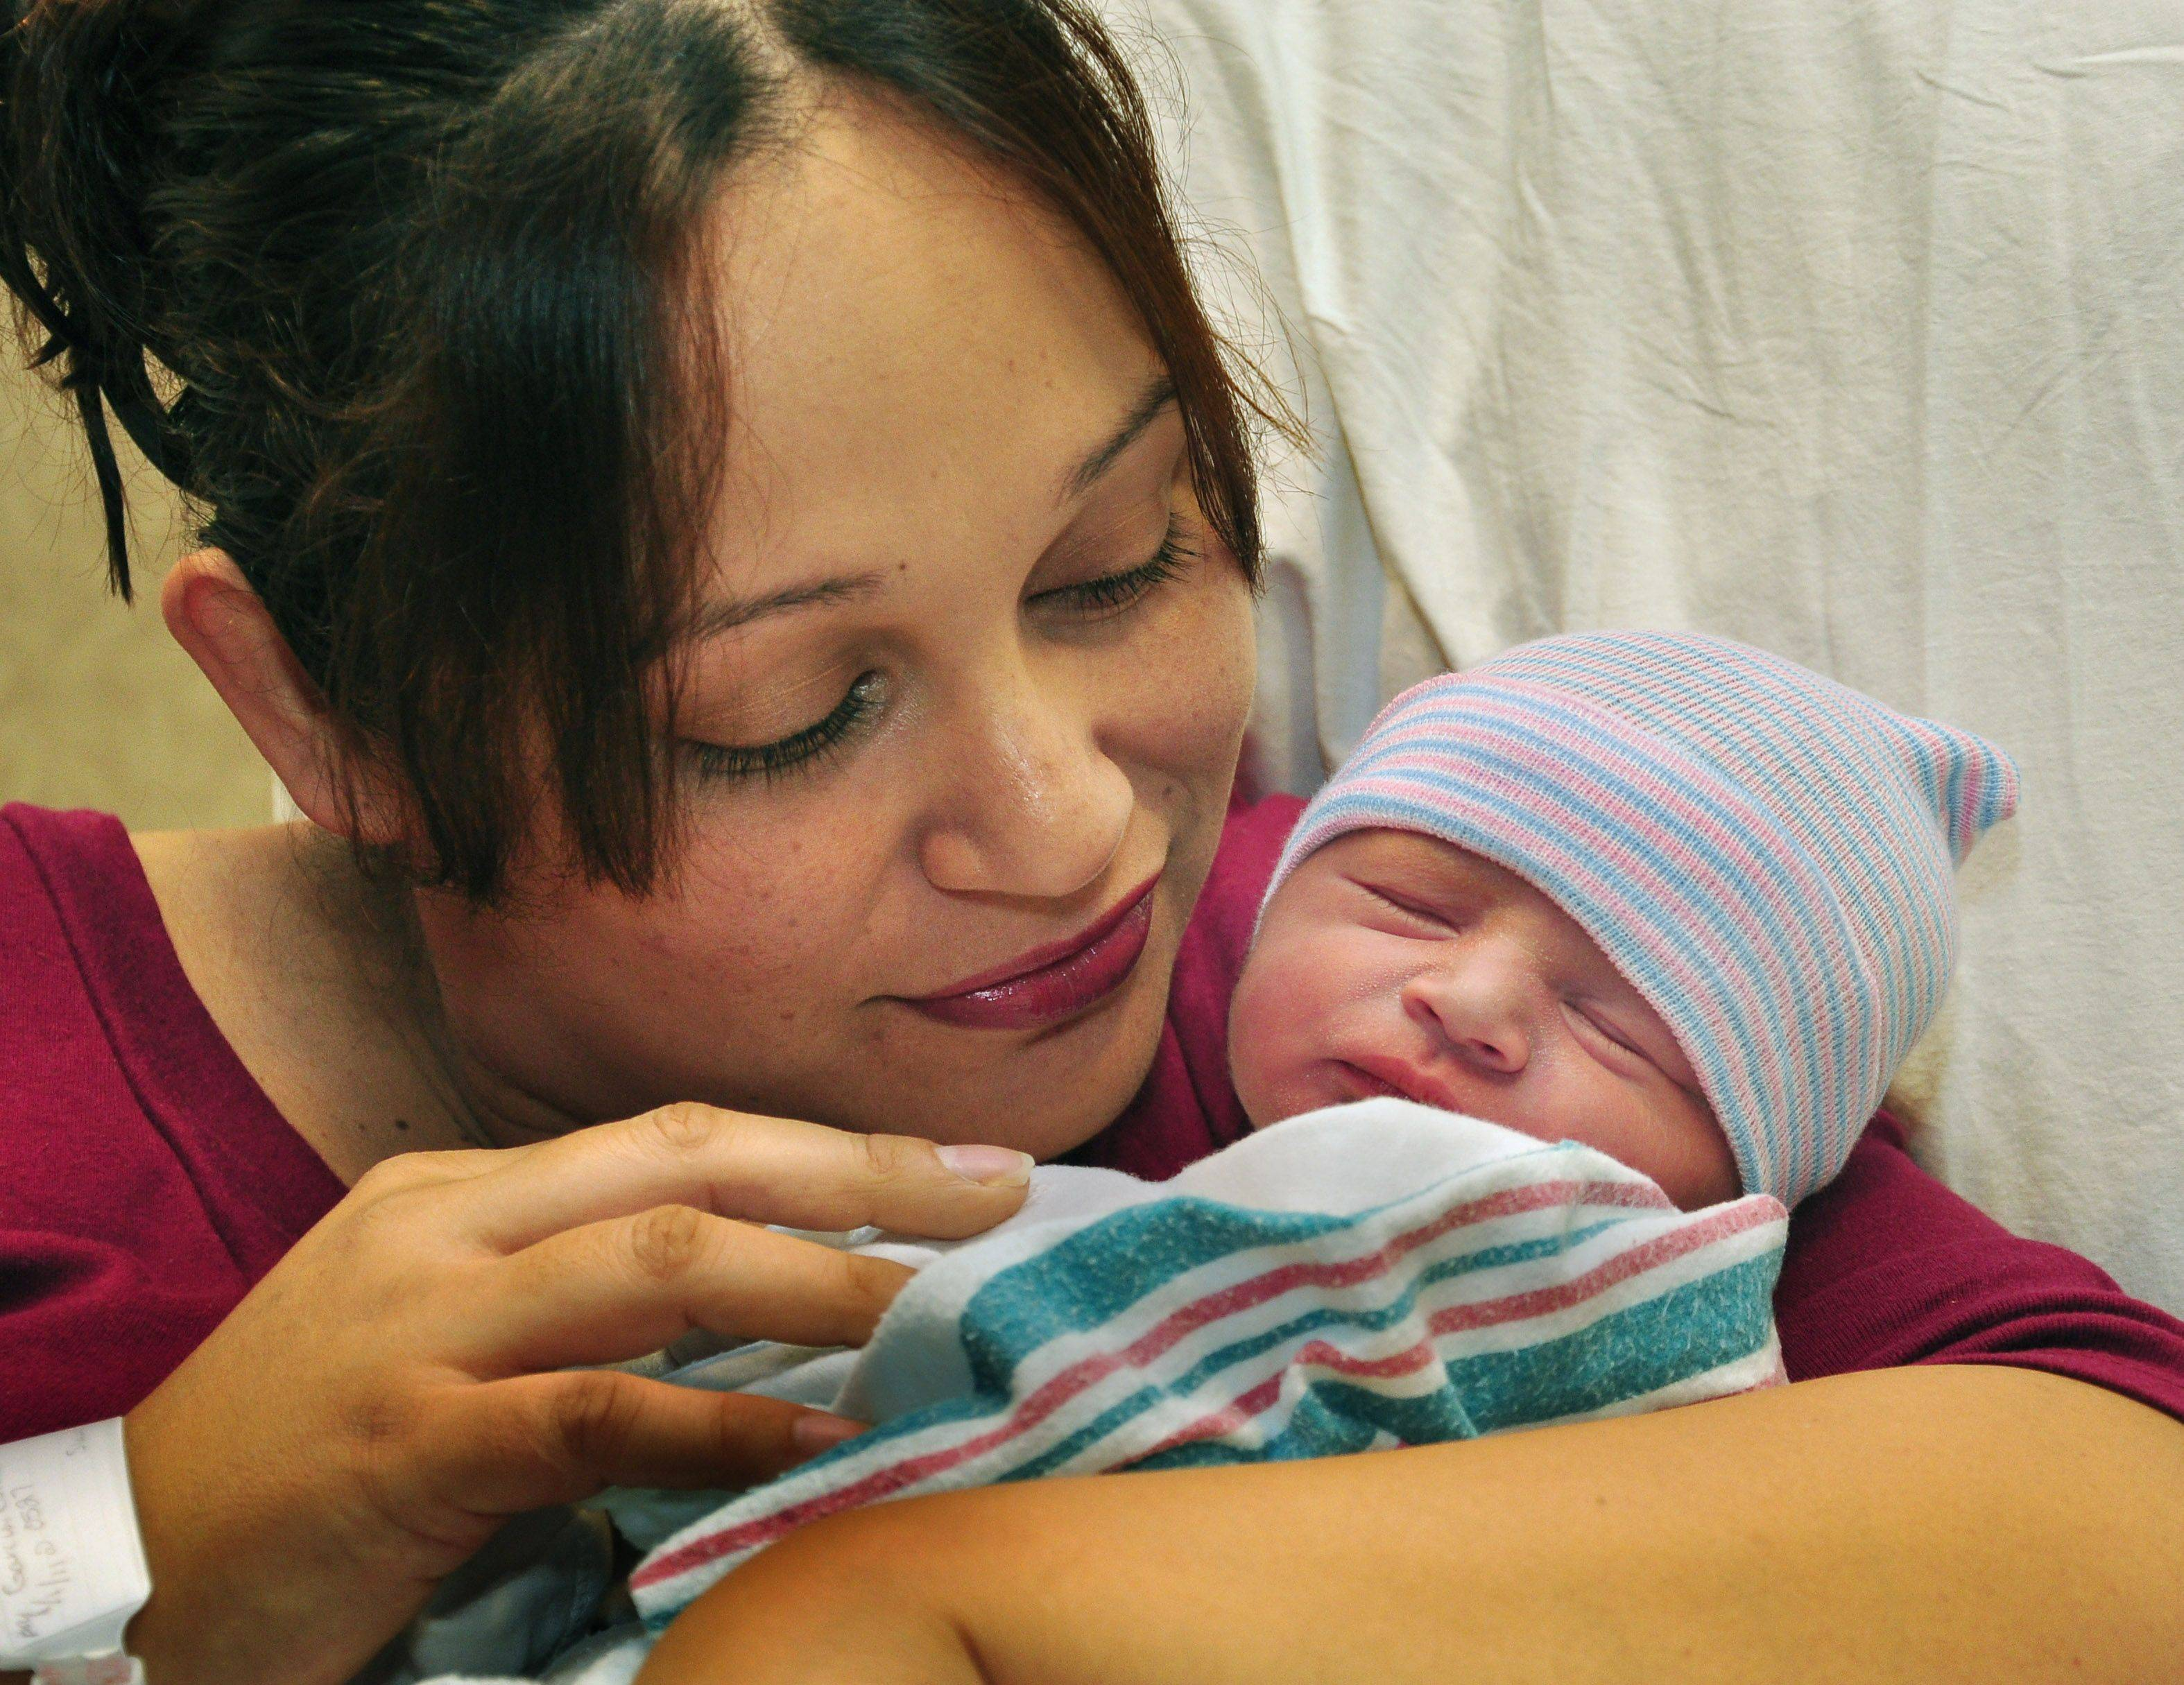 Lake County's first baby of 2011, Jakob Garcia, was born at 5:27 a.m.